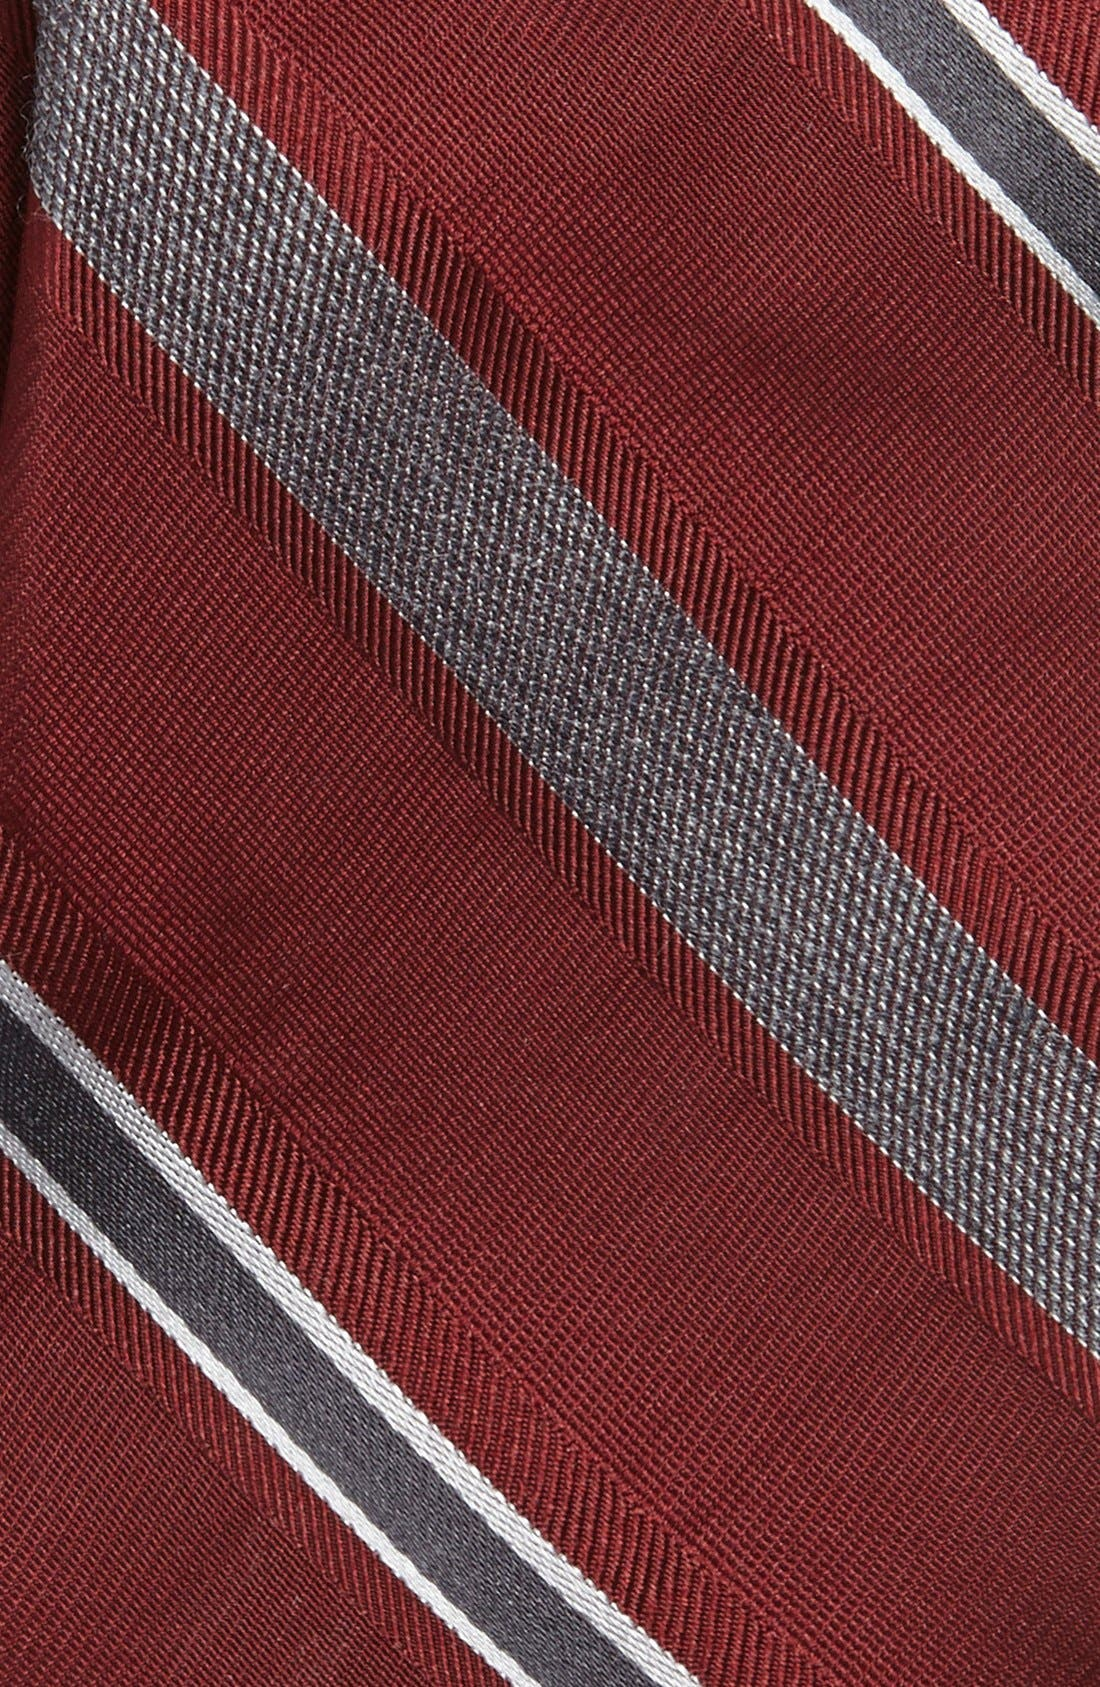 Alternate Image 2  - Michael Kors Woven Tie